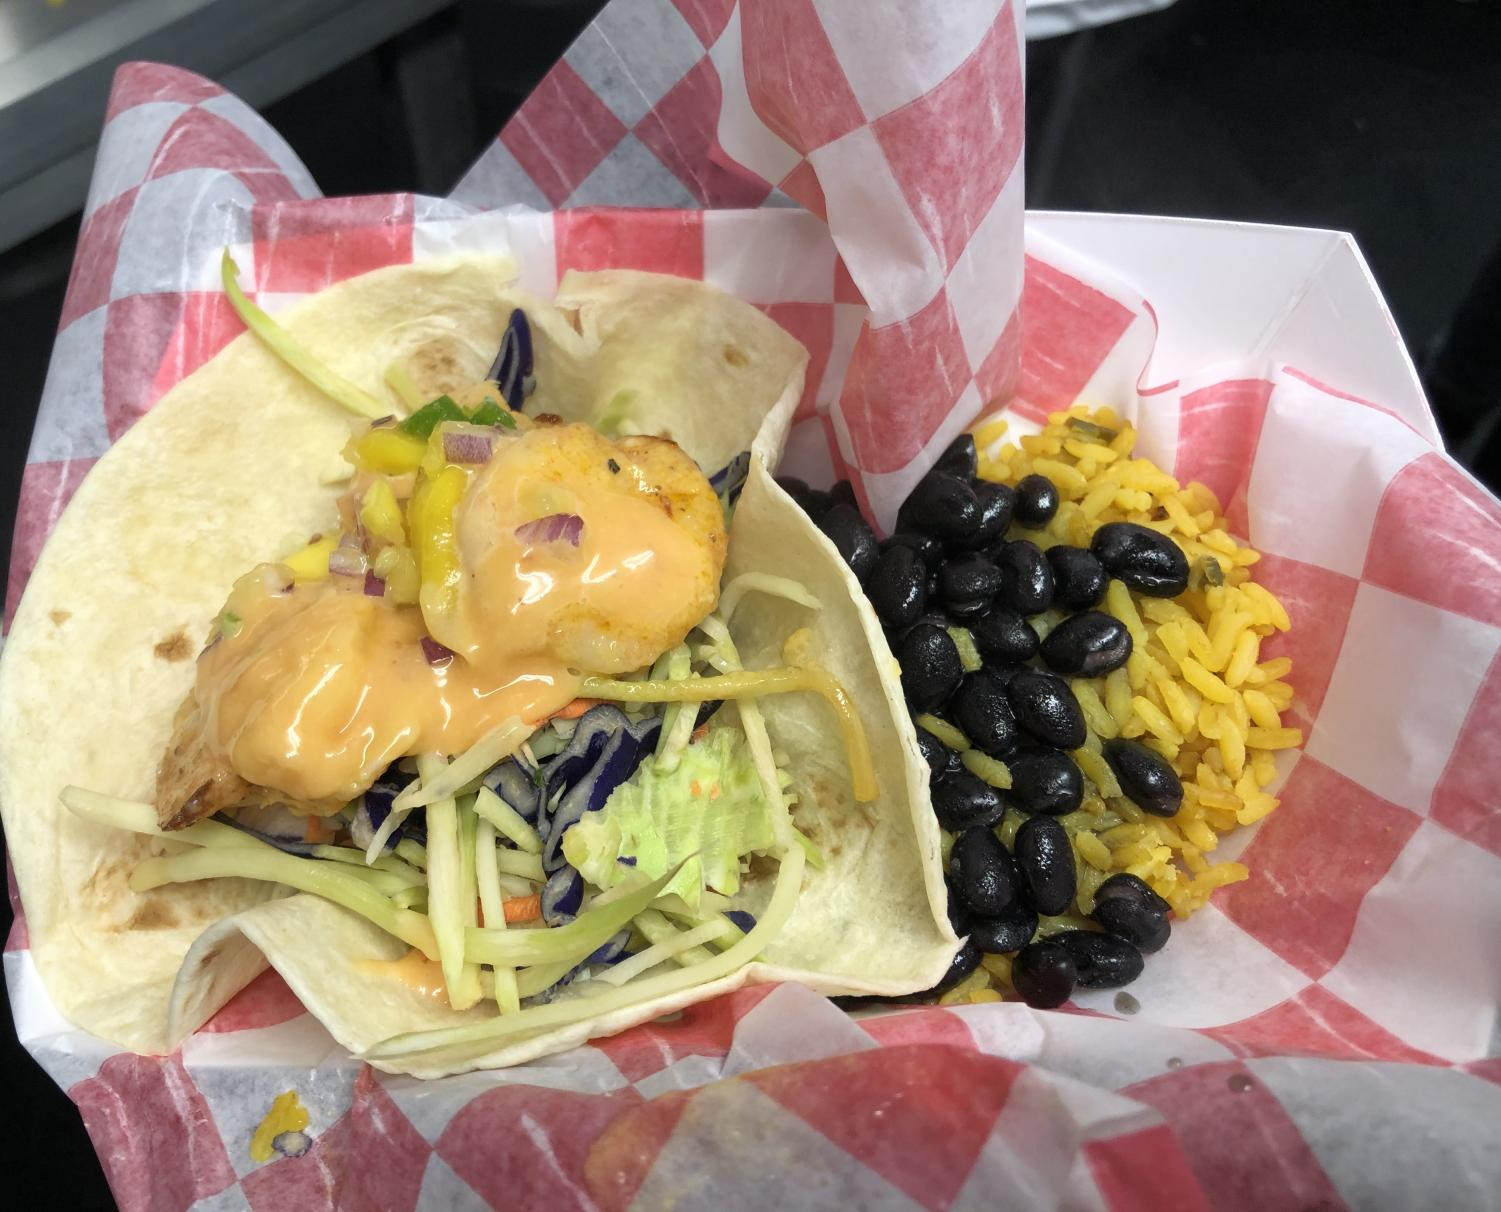 A meal offered by the Career Center's student-run food truck